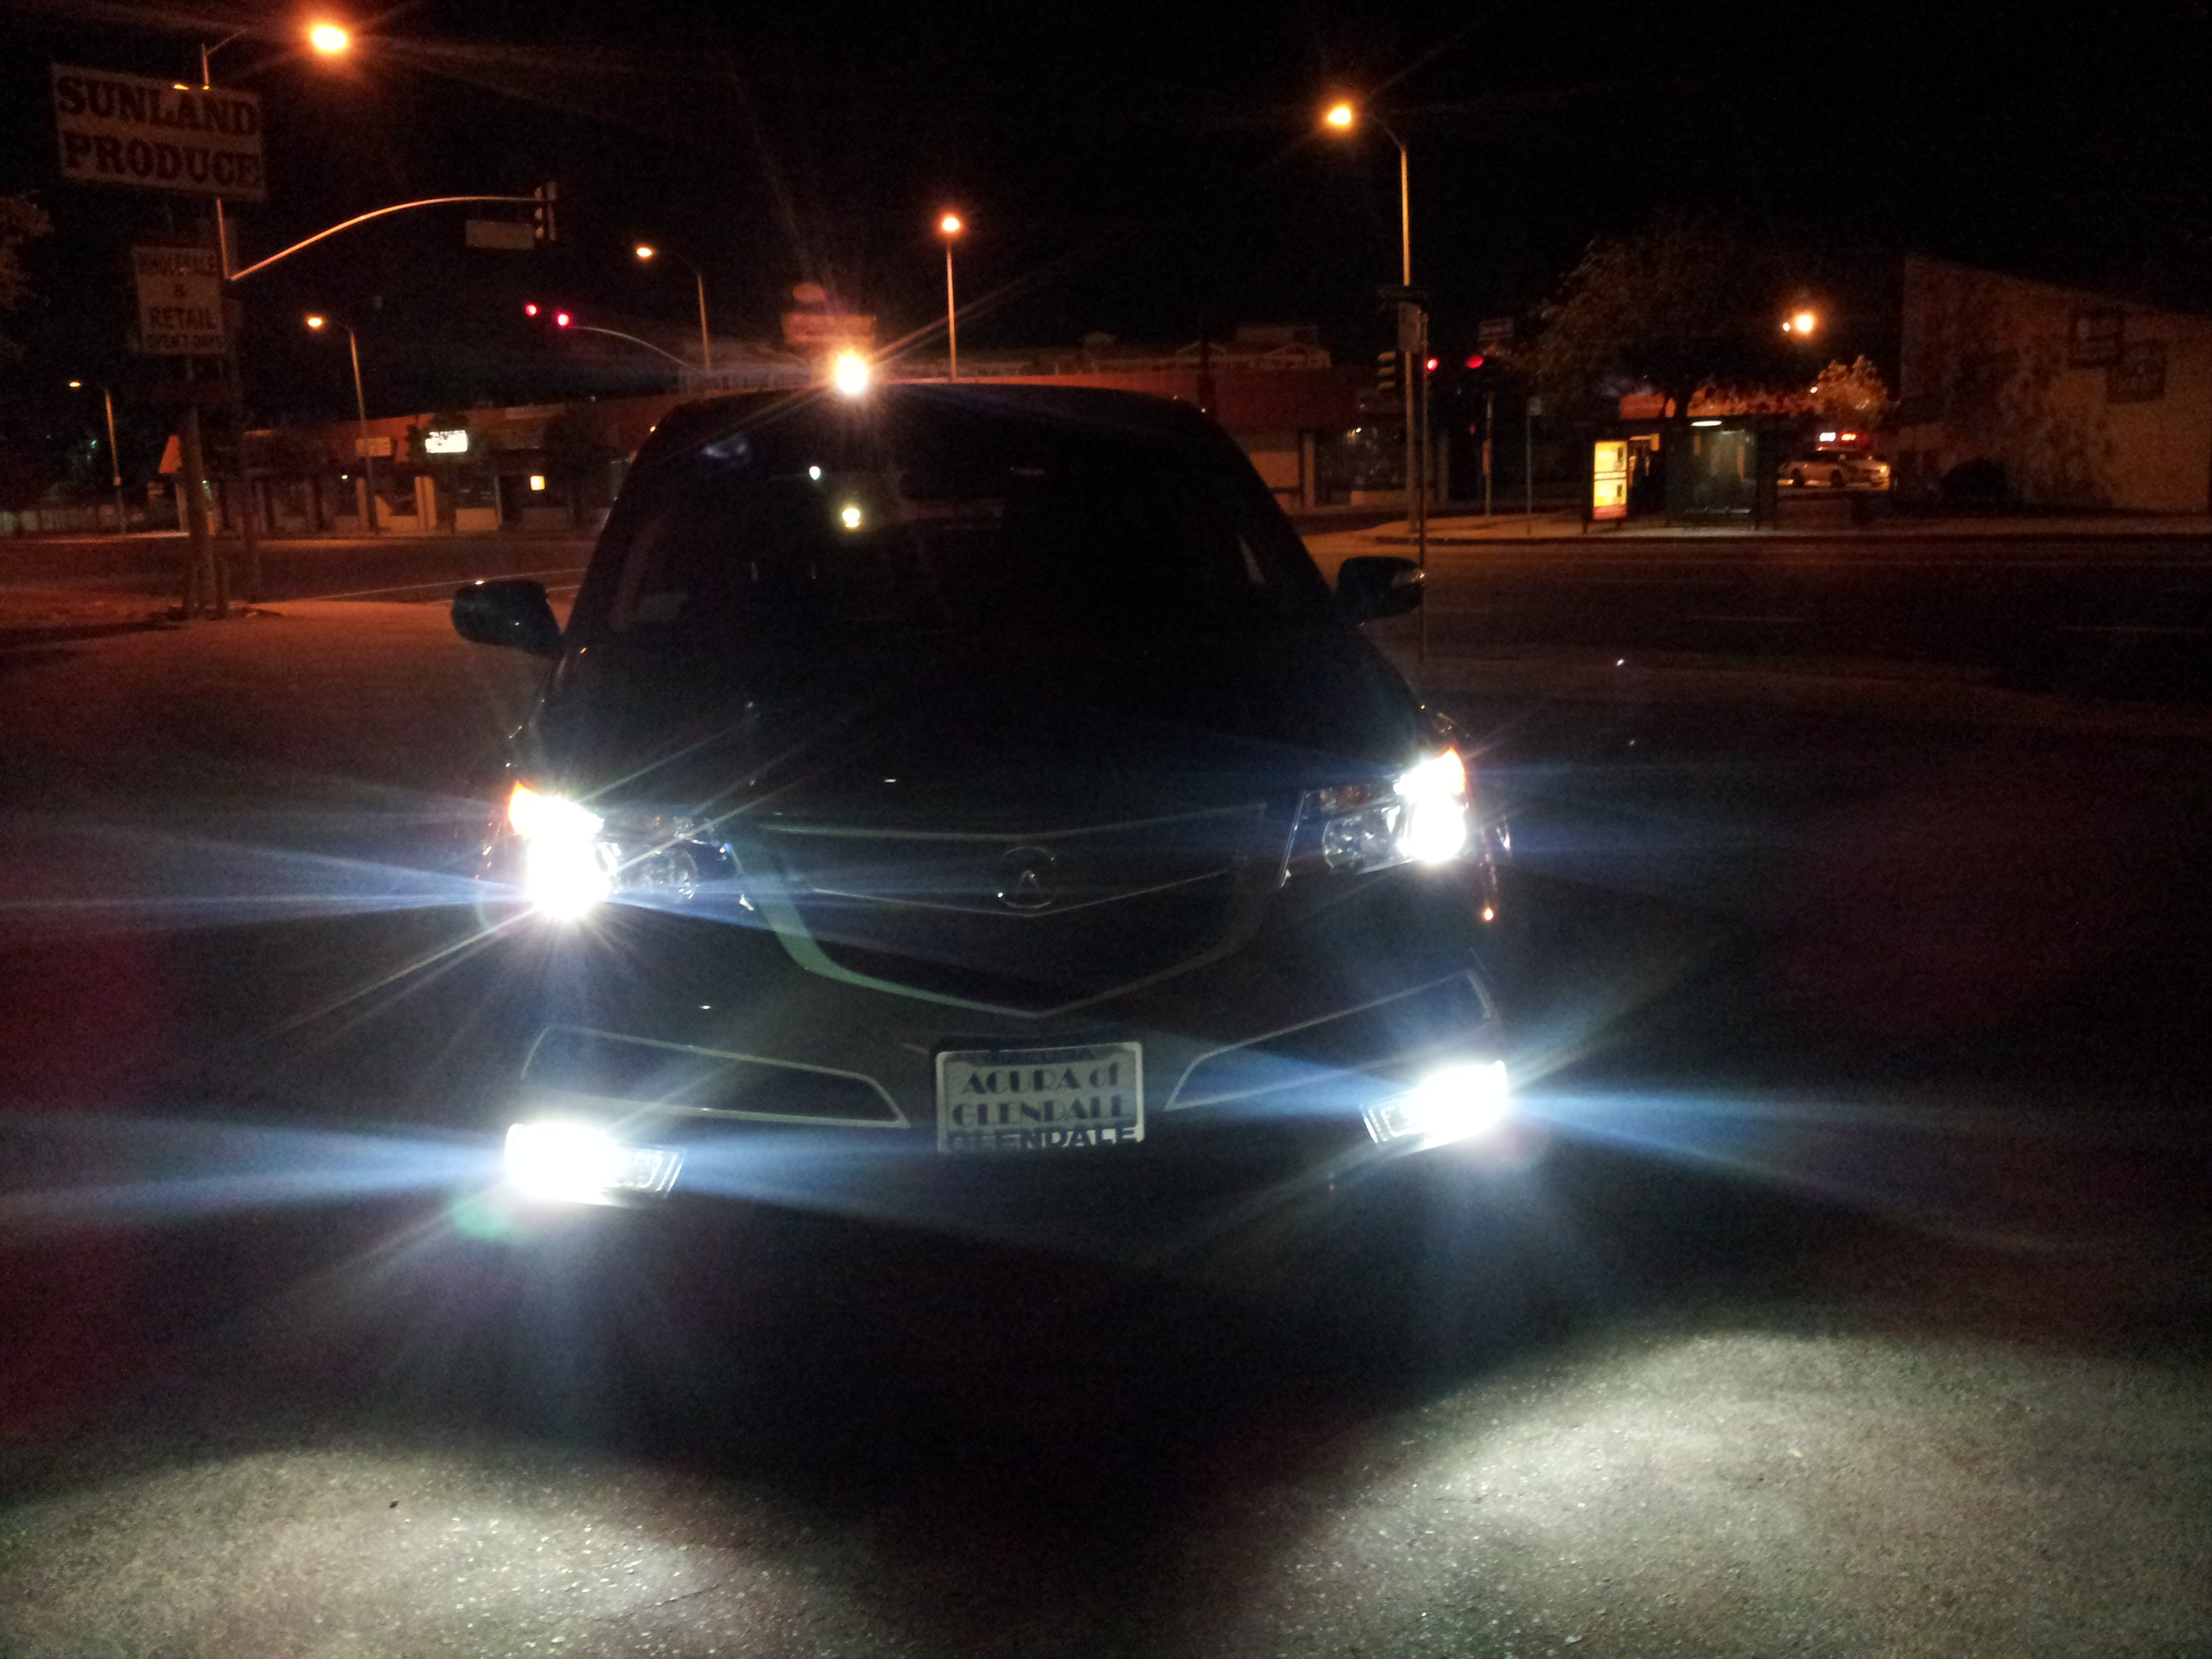 HID Fog/LED DRL Installed - PICS-20121025_213952.jpg